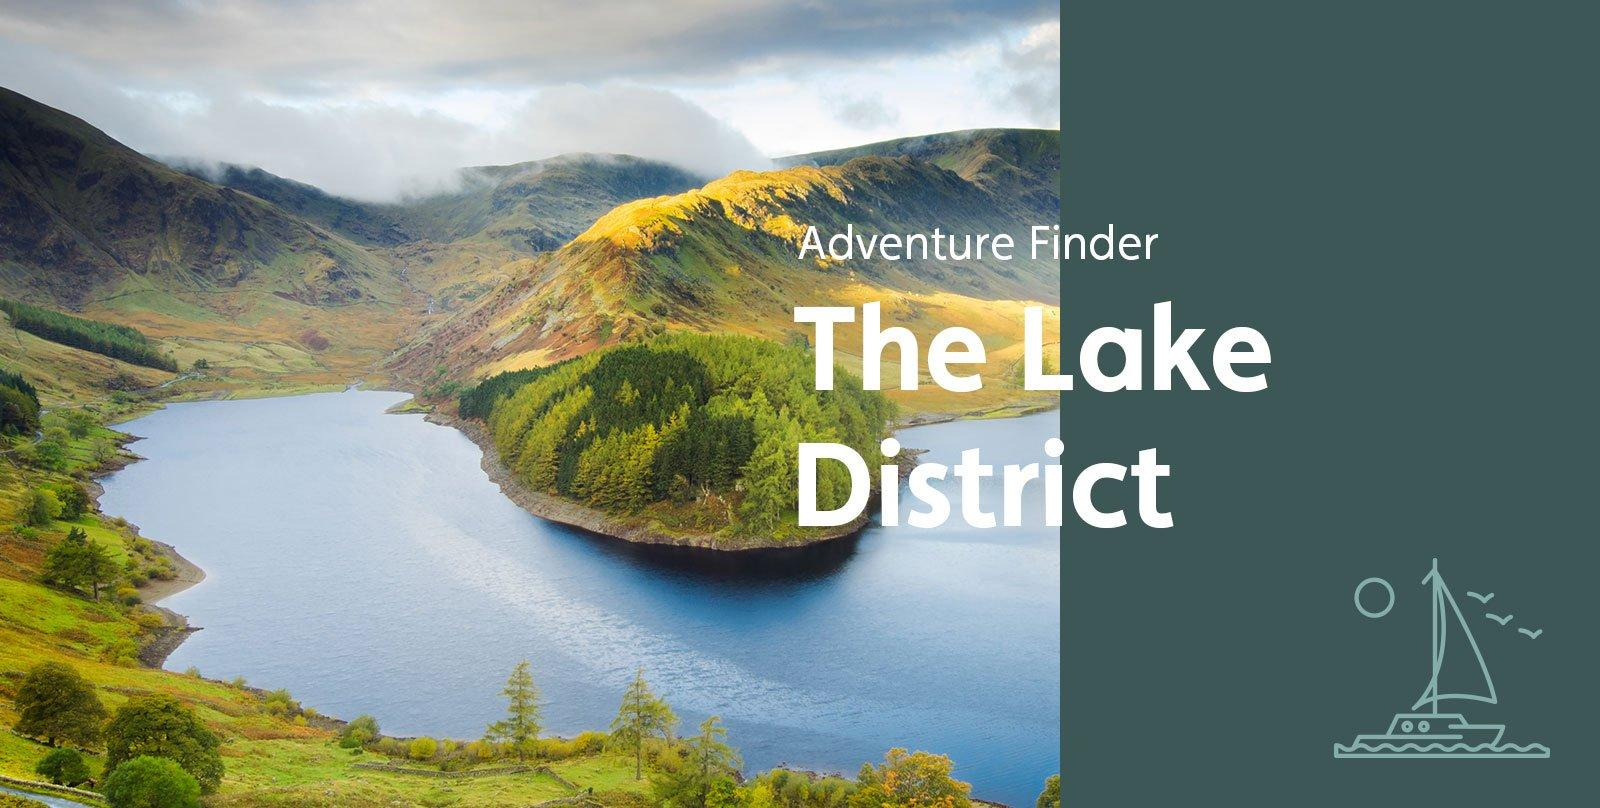 Adventure Finder – The Lake District